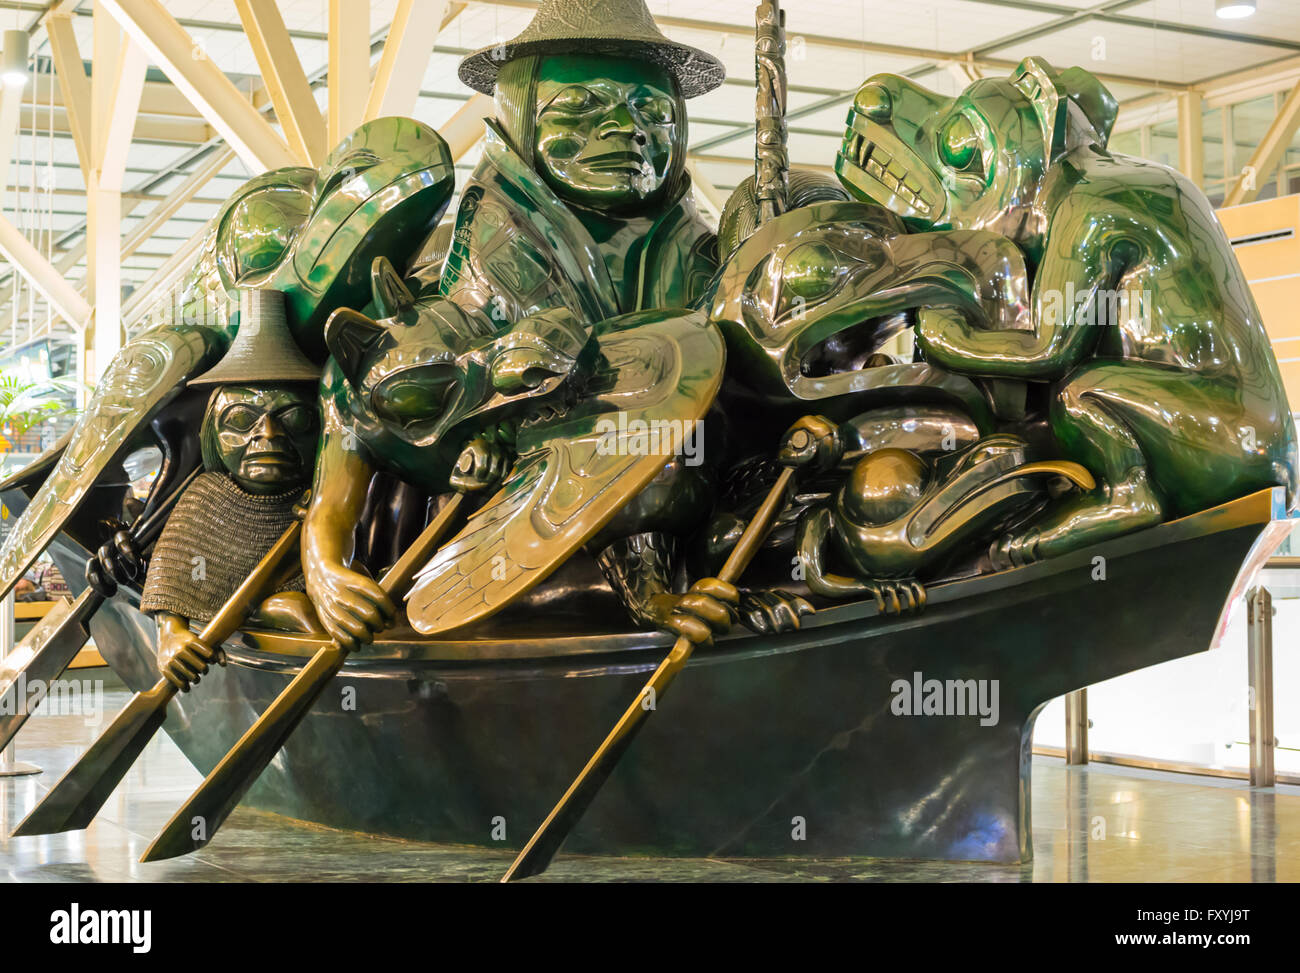 The Jade Canoe version of the Spirit of Haida Gwaii, by Bill Reid, located in the Vancouver International Airport. - Stock Image